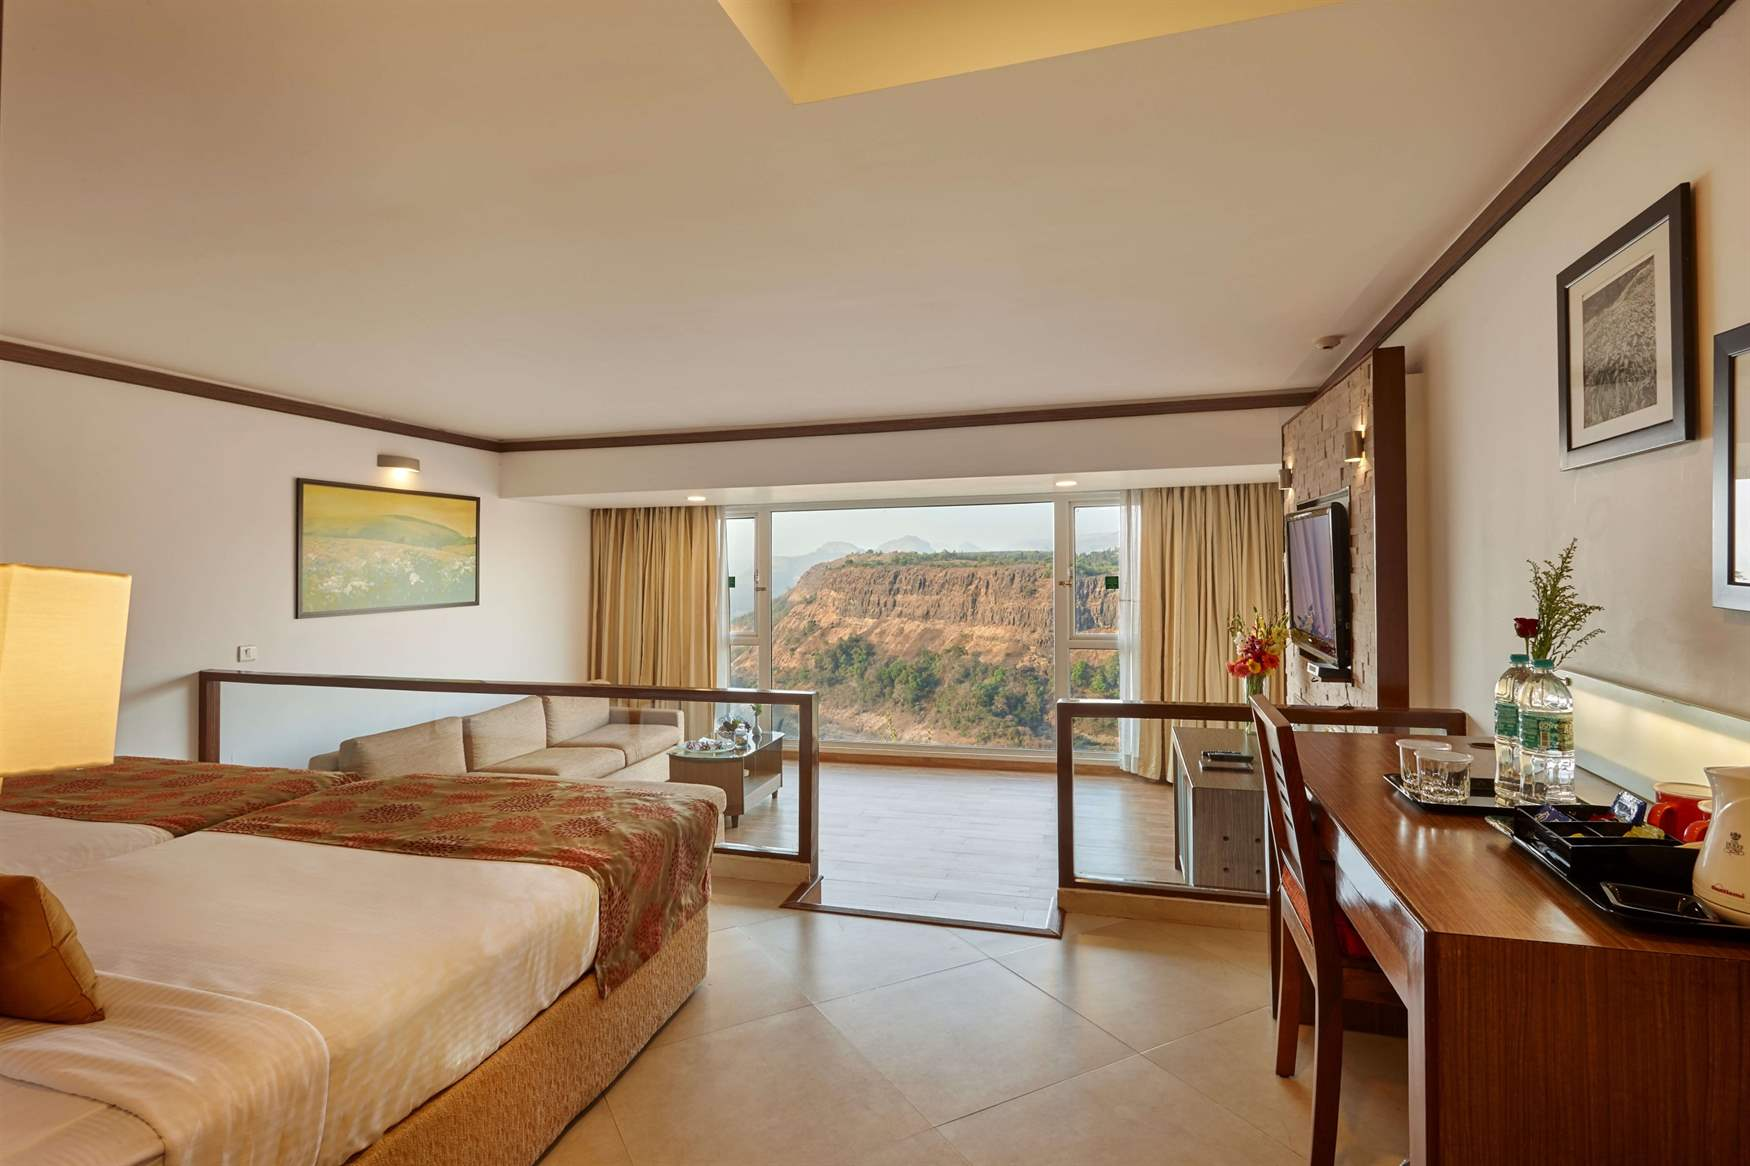 How to Find the Best Hotels in Lonavala